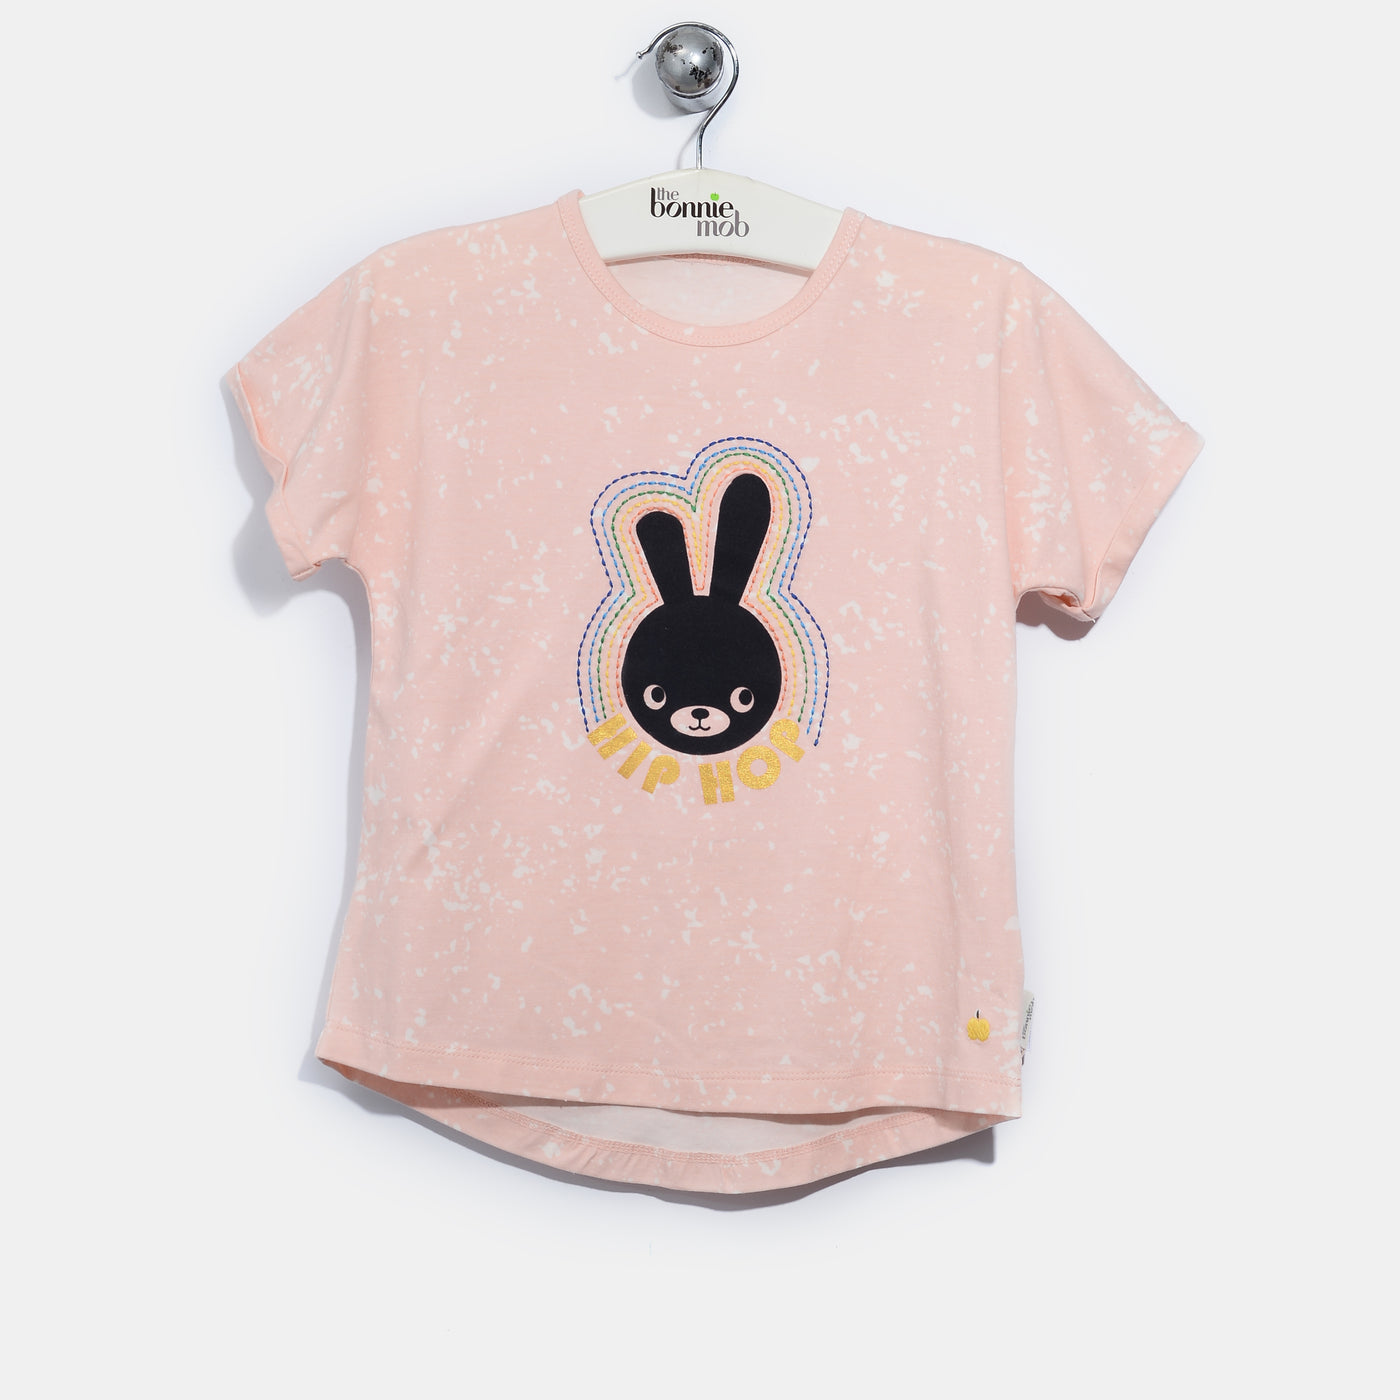 L-BUNNY-Hip Hop Bunny T-shirt-Kids Girl-Blush